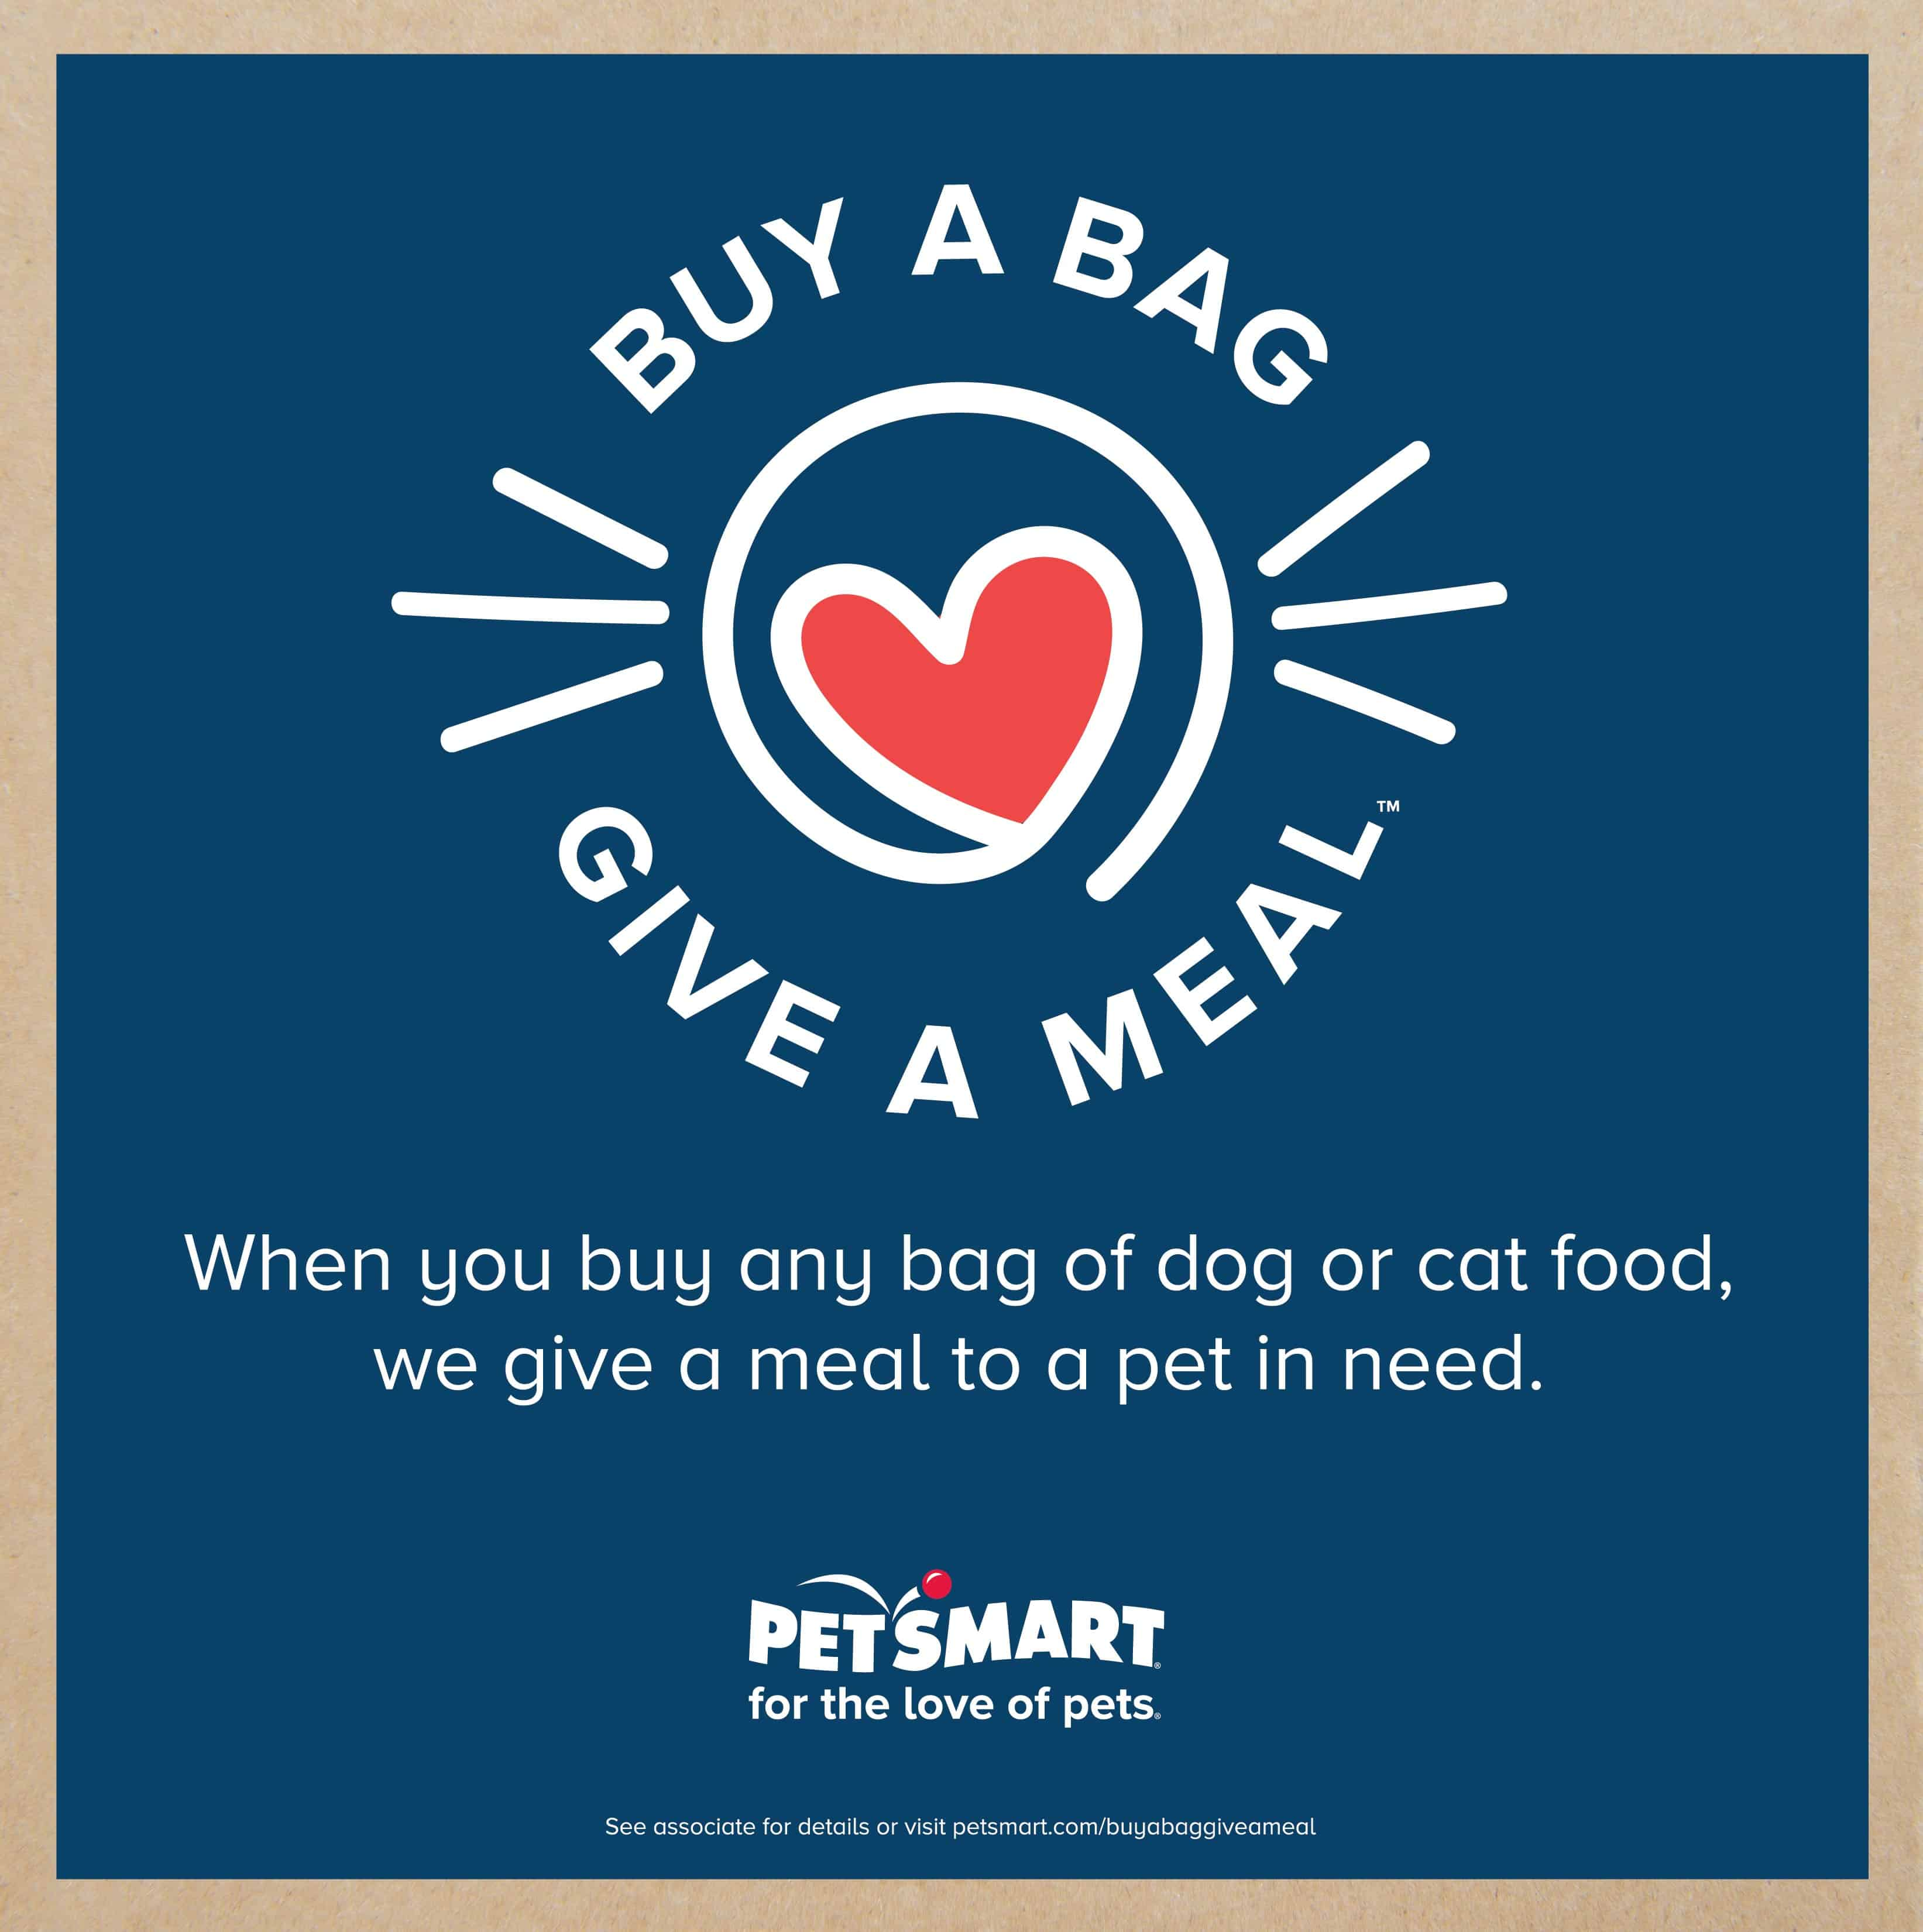 PetSmart celebrates 30 years with their biggest philanthropic campaign ever! Find out how you can help animals in need with Buy a Bag, Give a Meal™